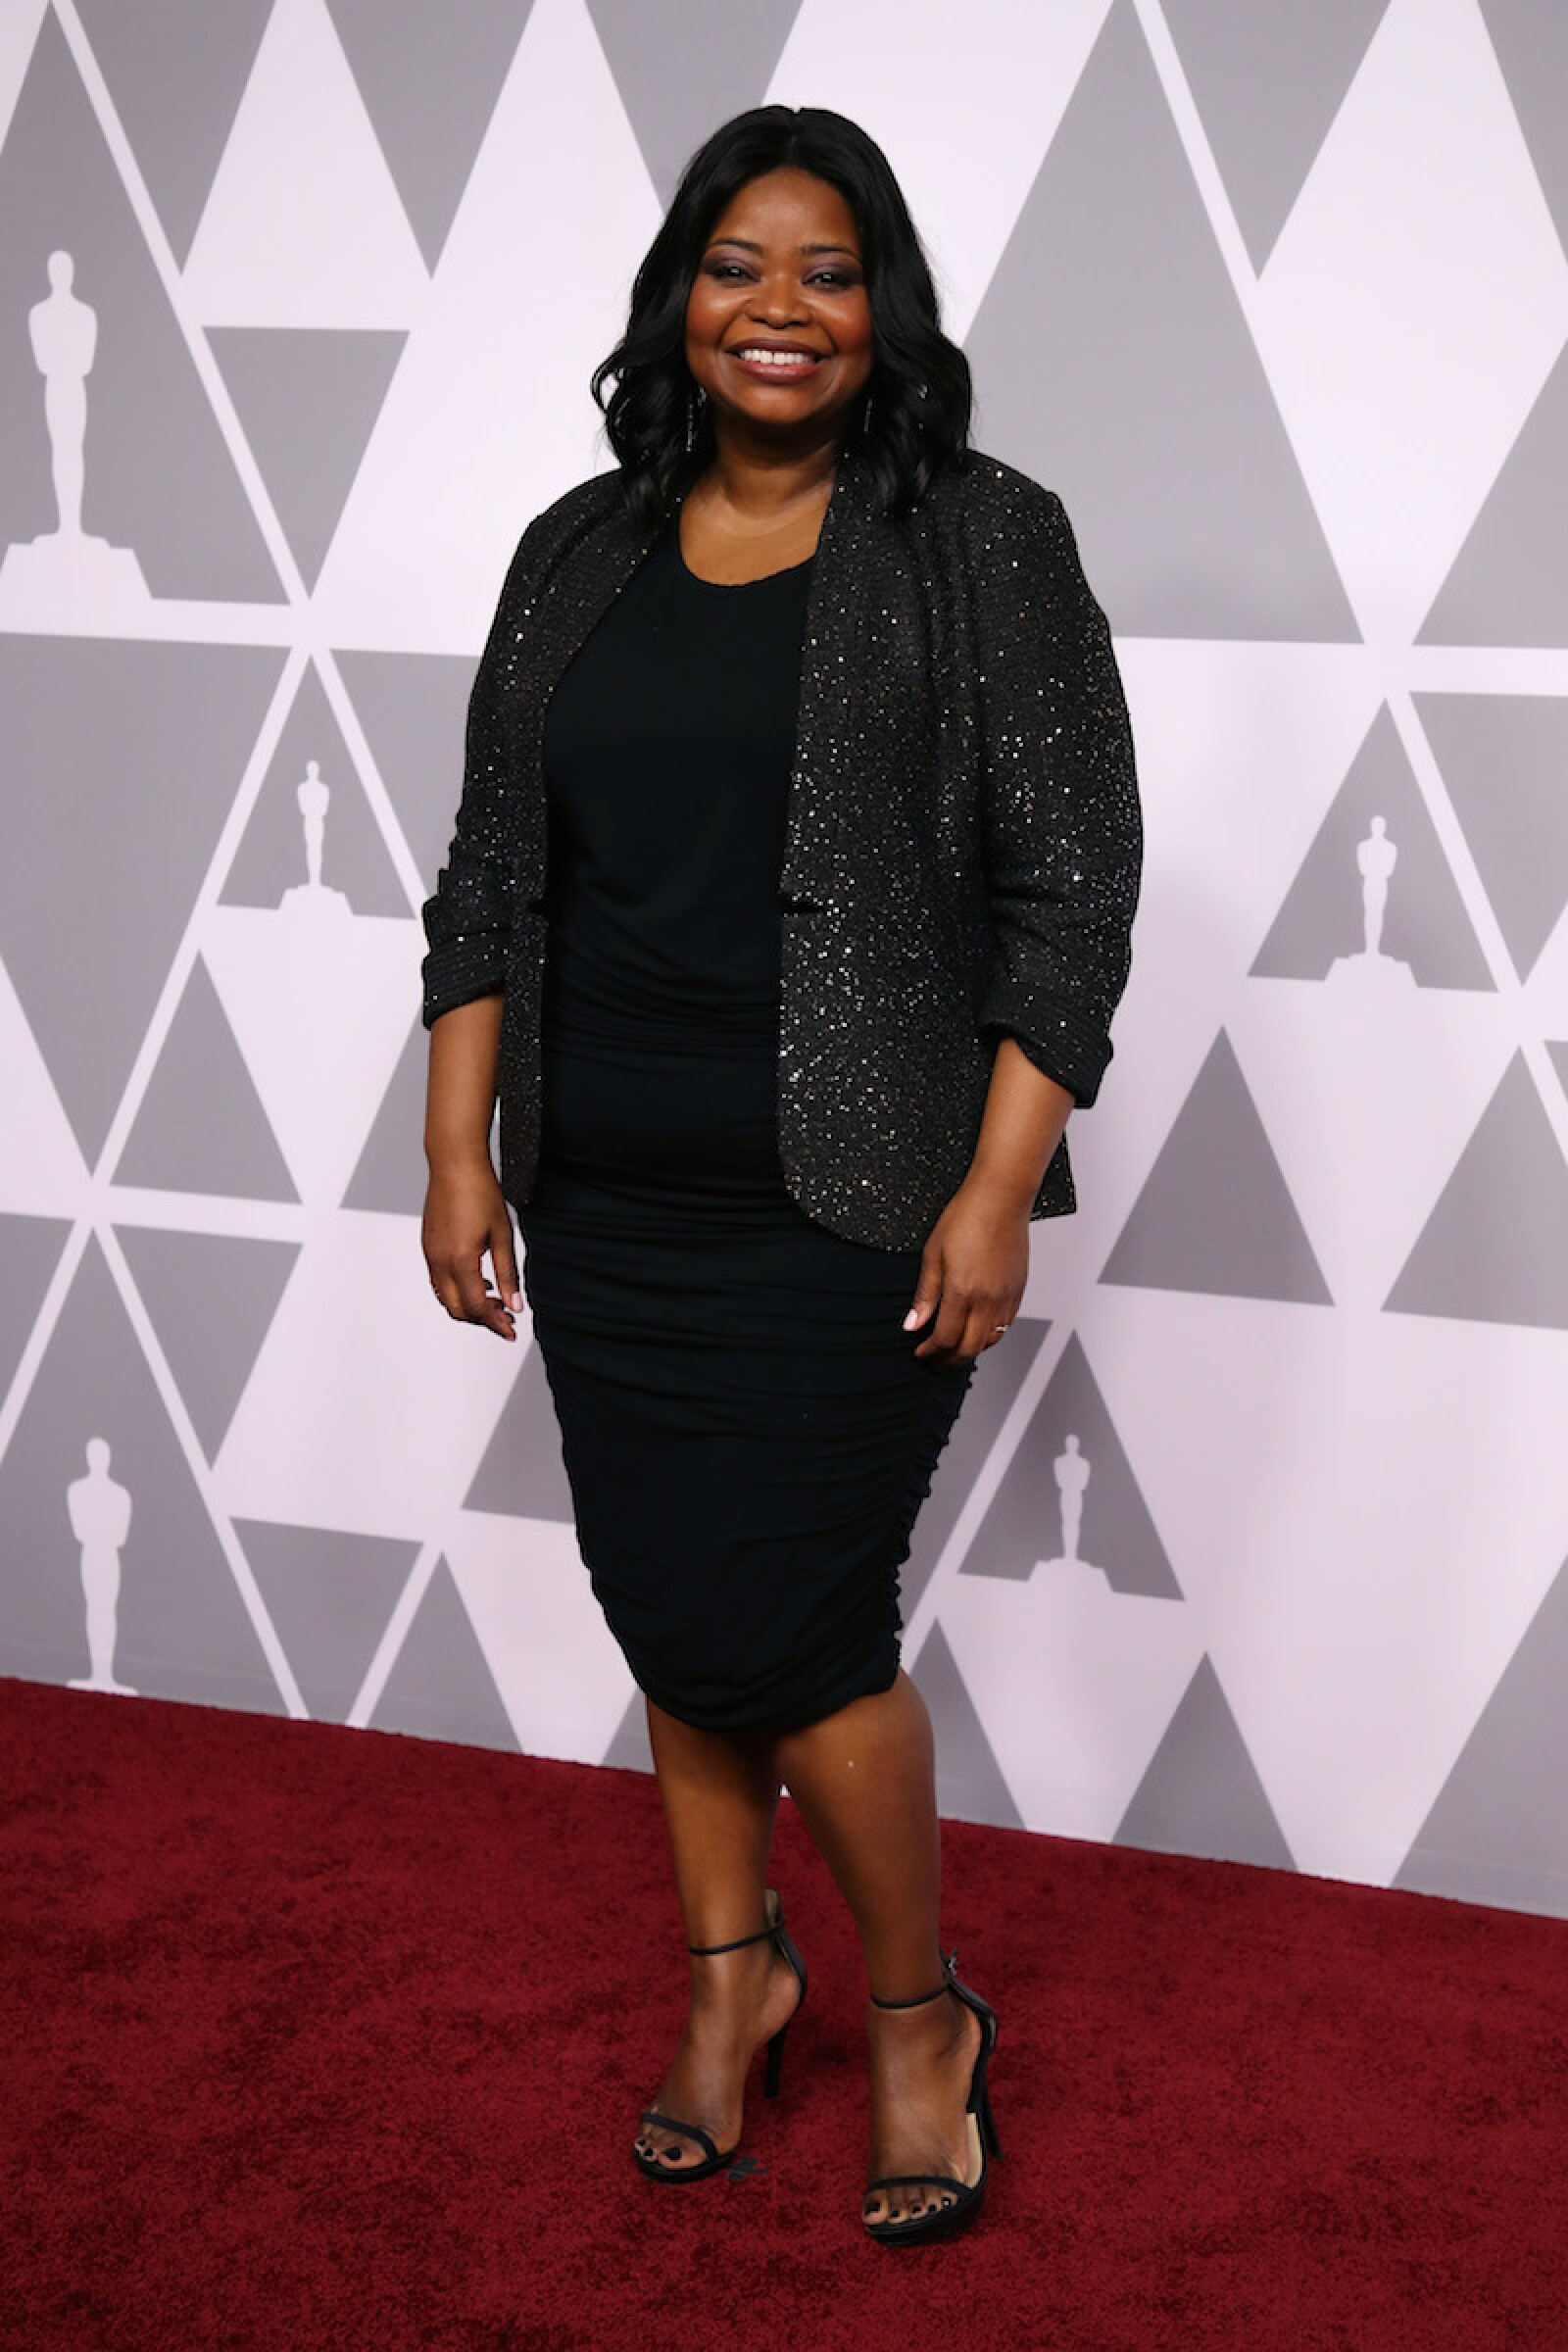 The Academy Awards Nominees Luncheon, Arrivals, Los Angeles, USA - 05 Feb 2018